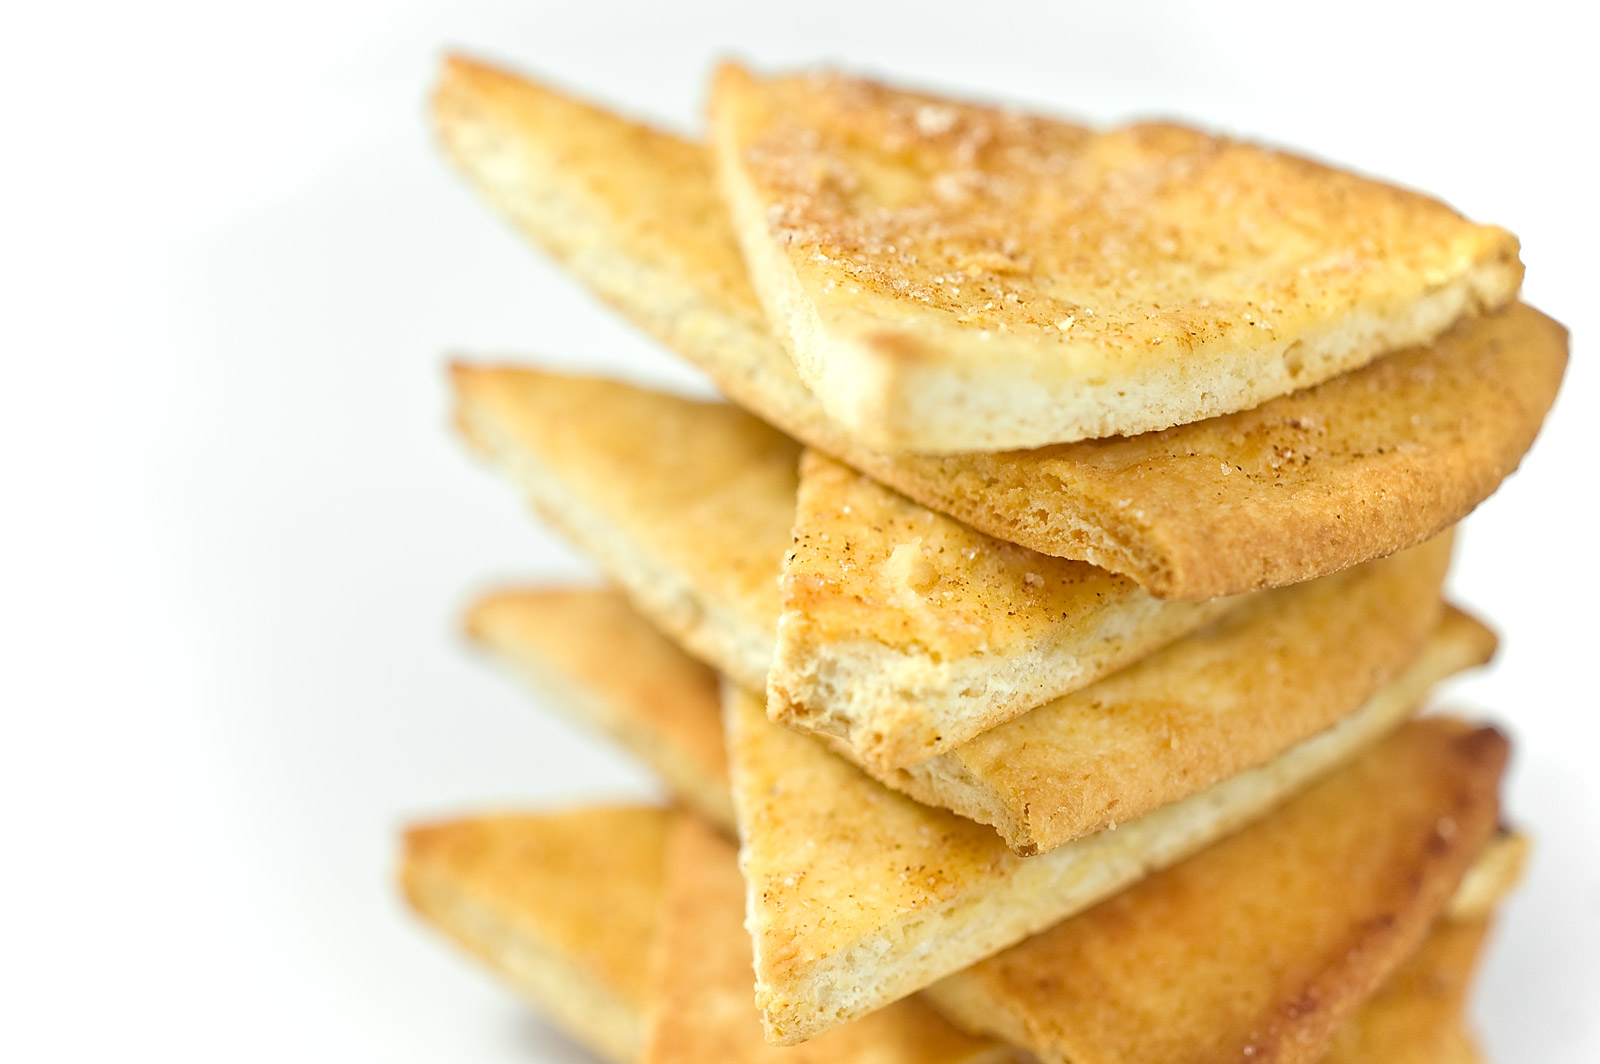 snack alert baked pita chips myopc make your own pita chips far less ...